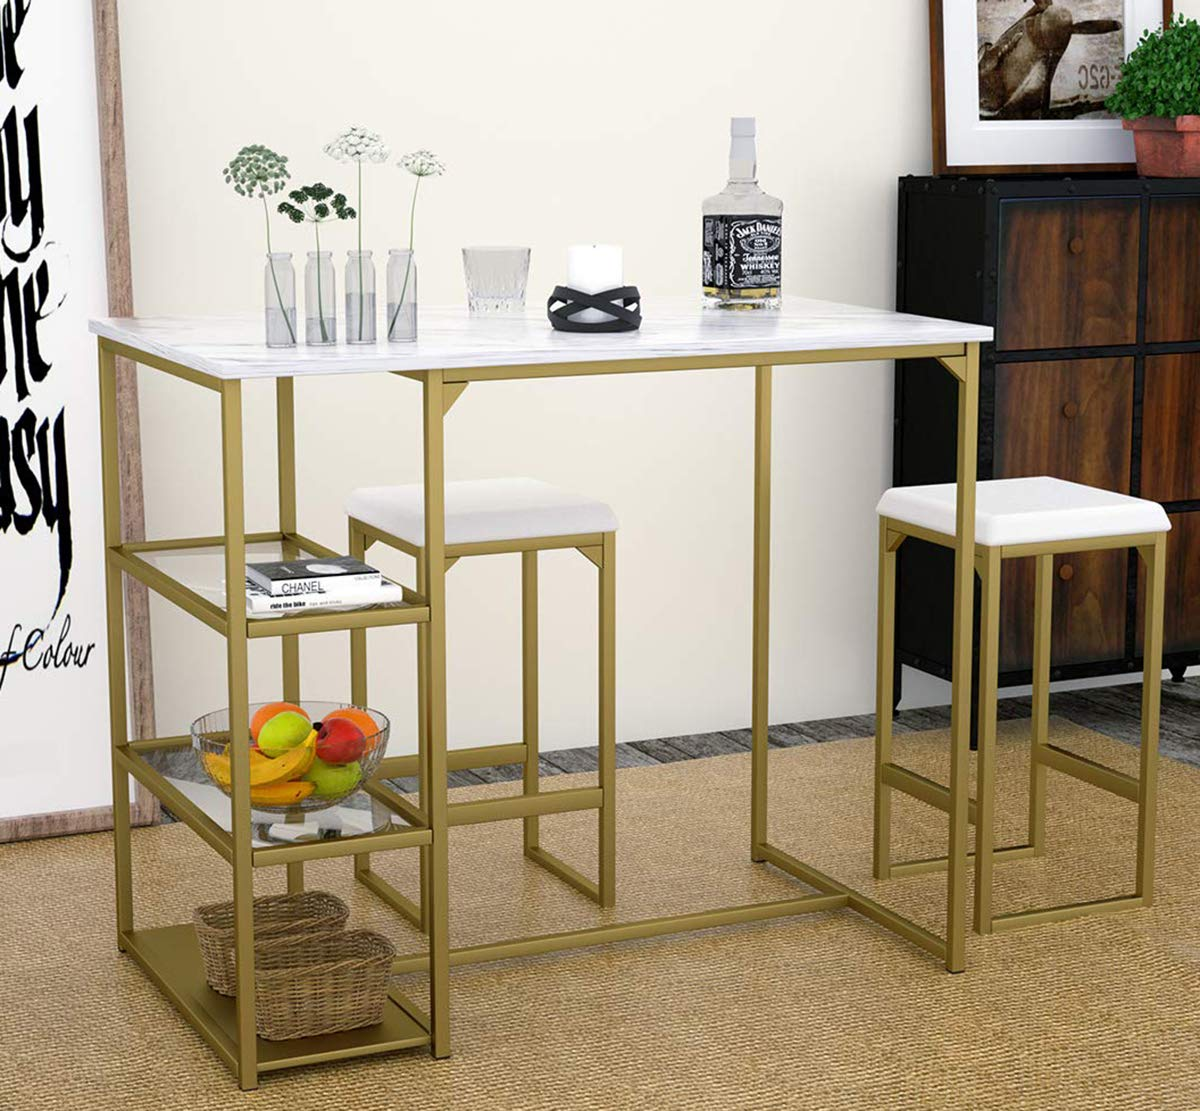 Modern 3 Piece Counter Dining Table Set with 2 Bar Stools and Metal Frame and Shelf Storage,Brass Pub Set with Faux Marble Top by Amooly